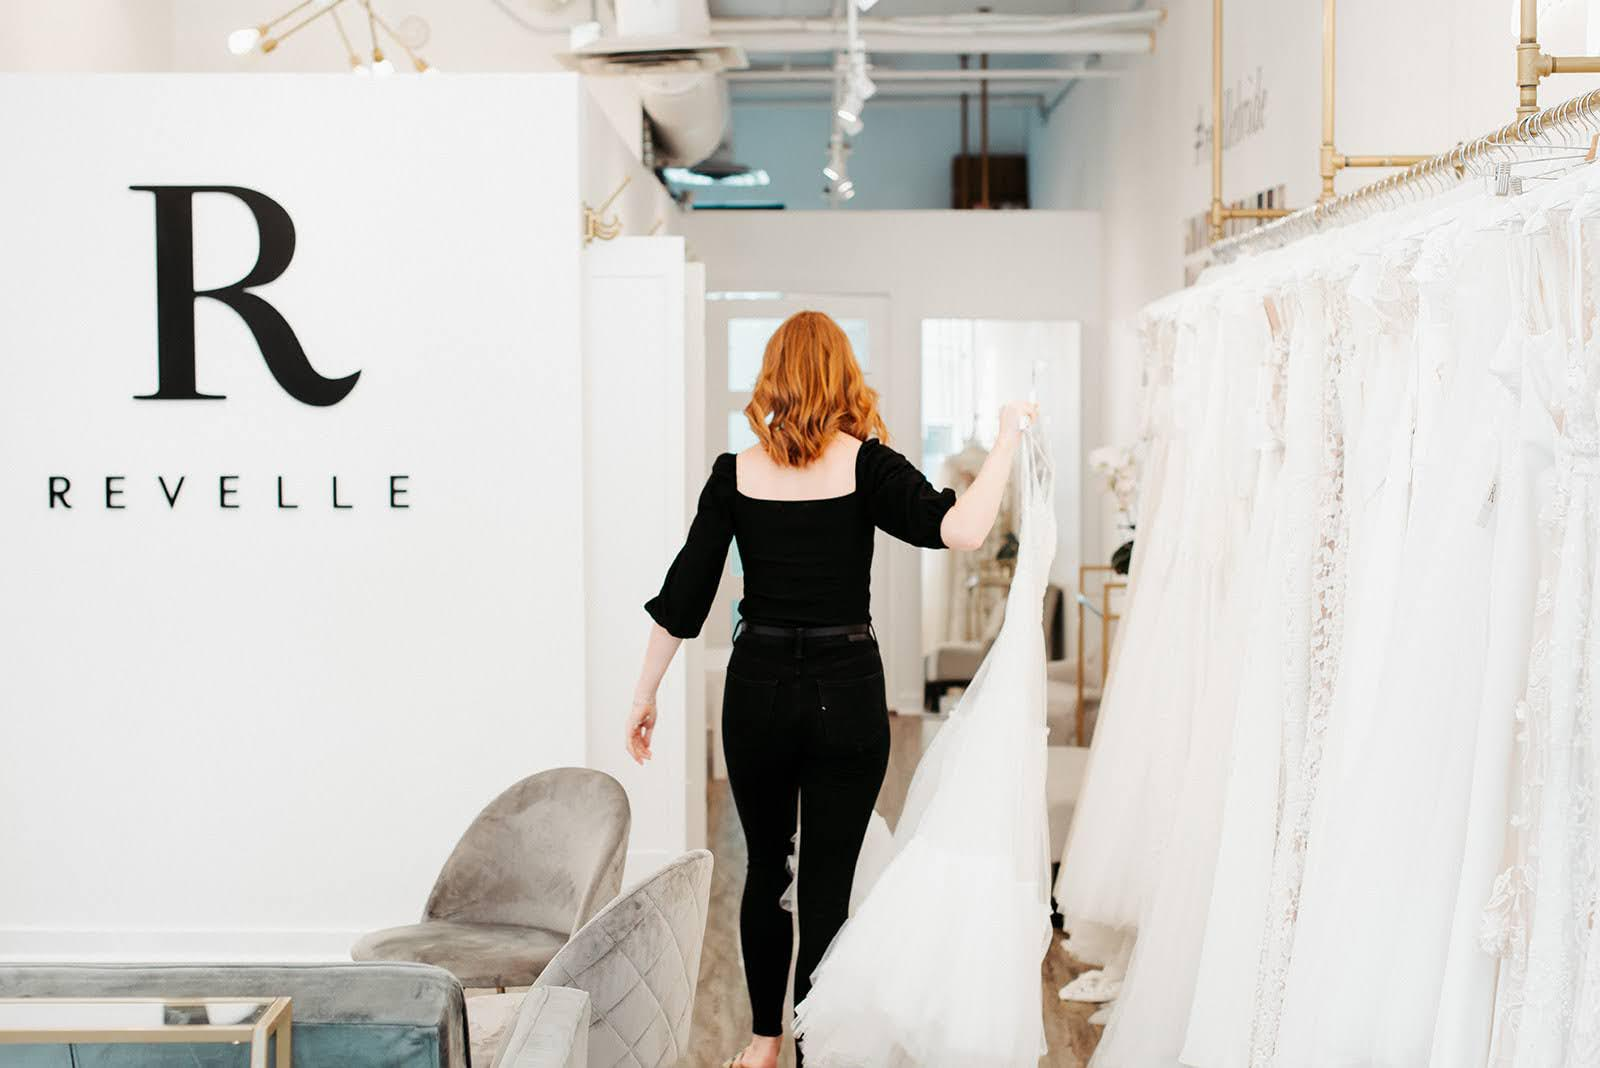 Revelle Bridal - Sacha carrying gown - Photo Credit Laura Kelly Photography